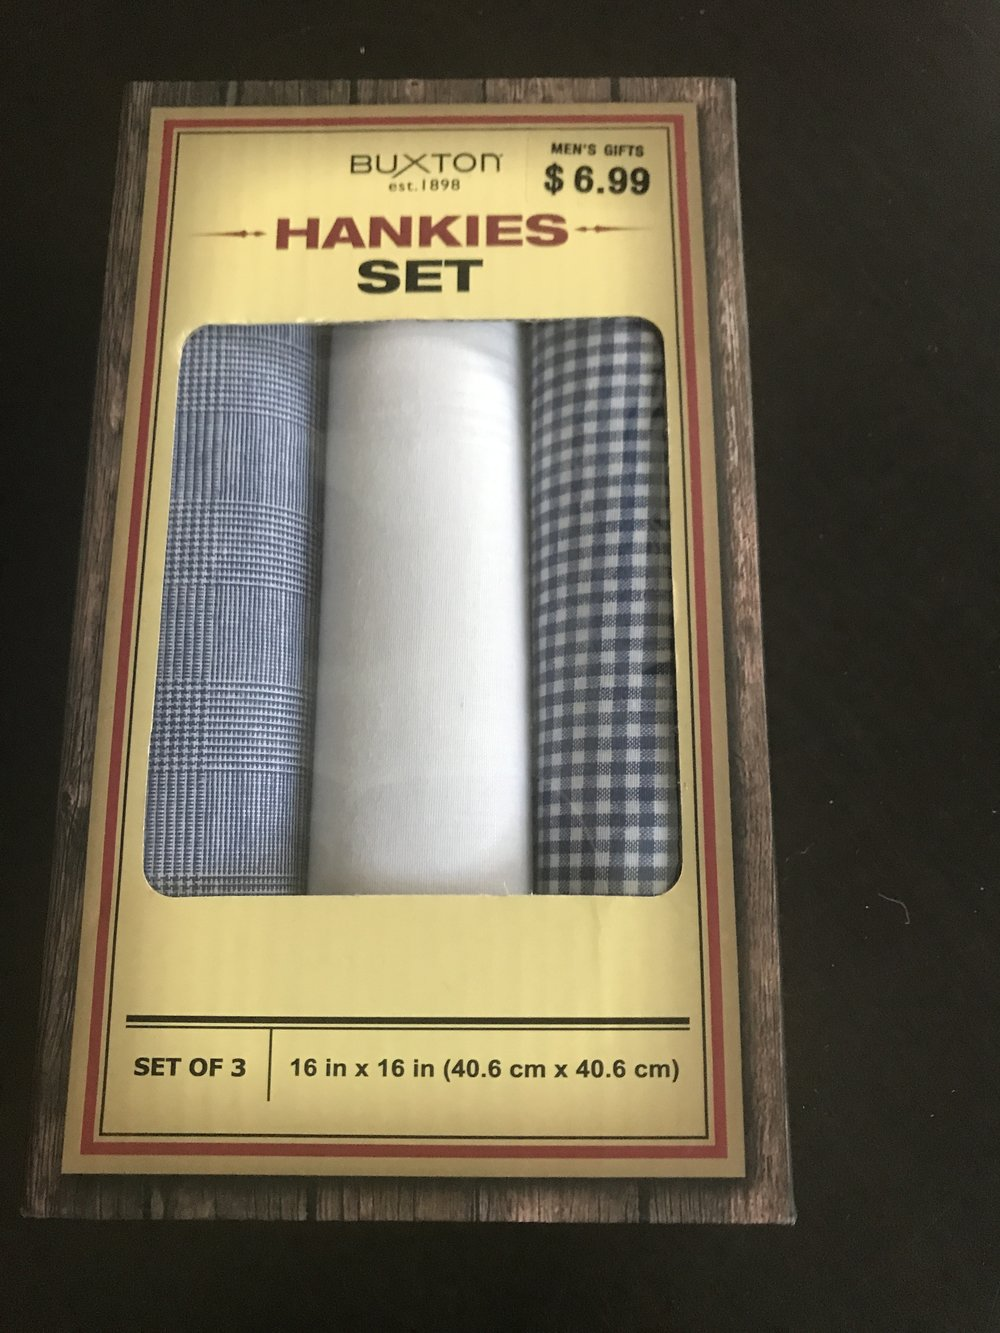 These are stylish handkerchiefs. Target. Three for $6.99.